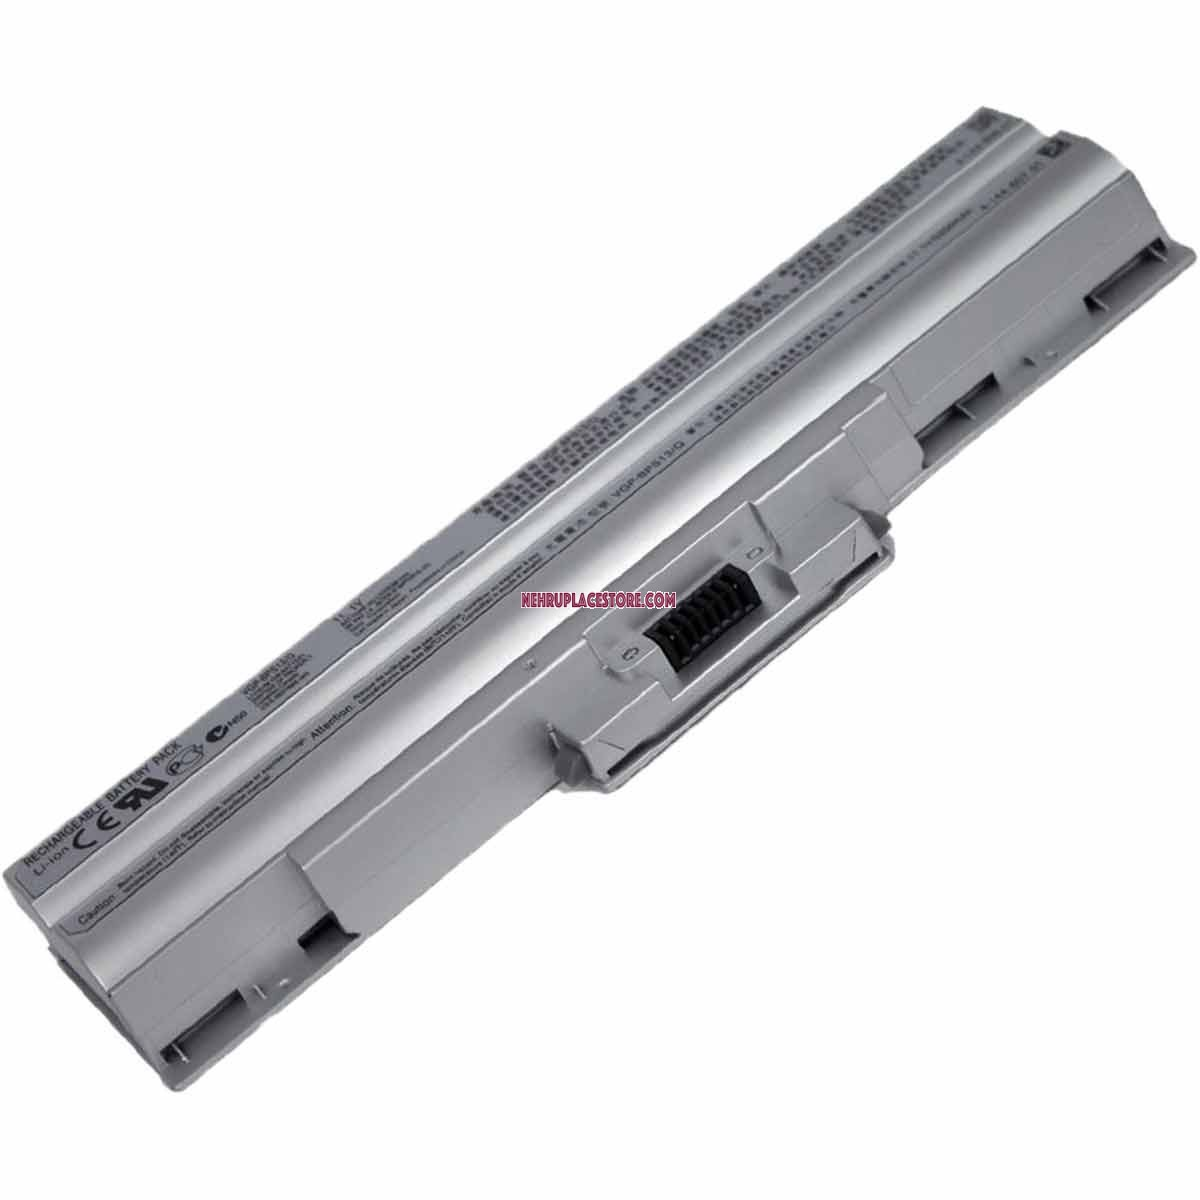 Sony VAIO VGP-BPL13 Laptop / Notebook Battery With